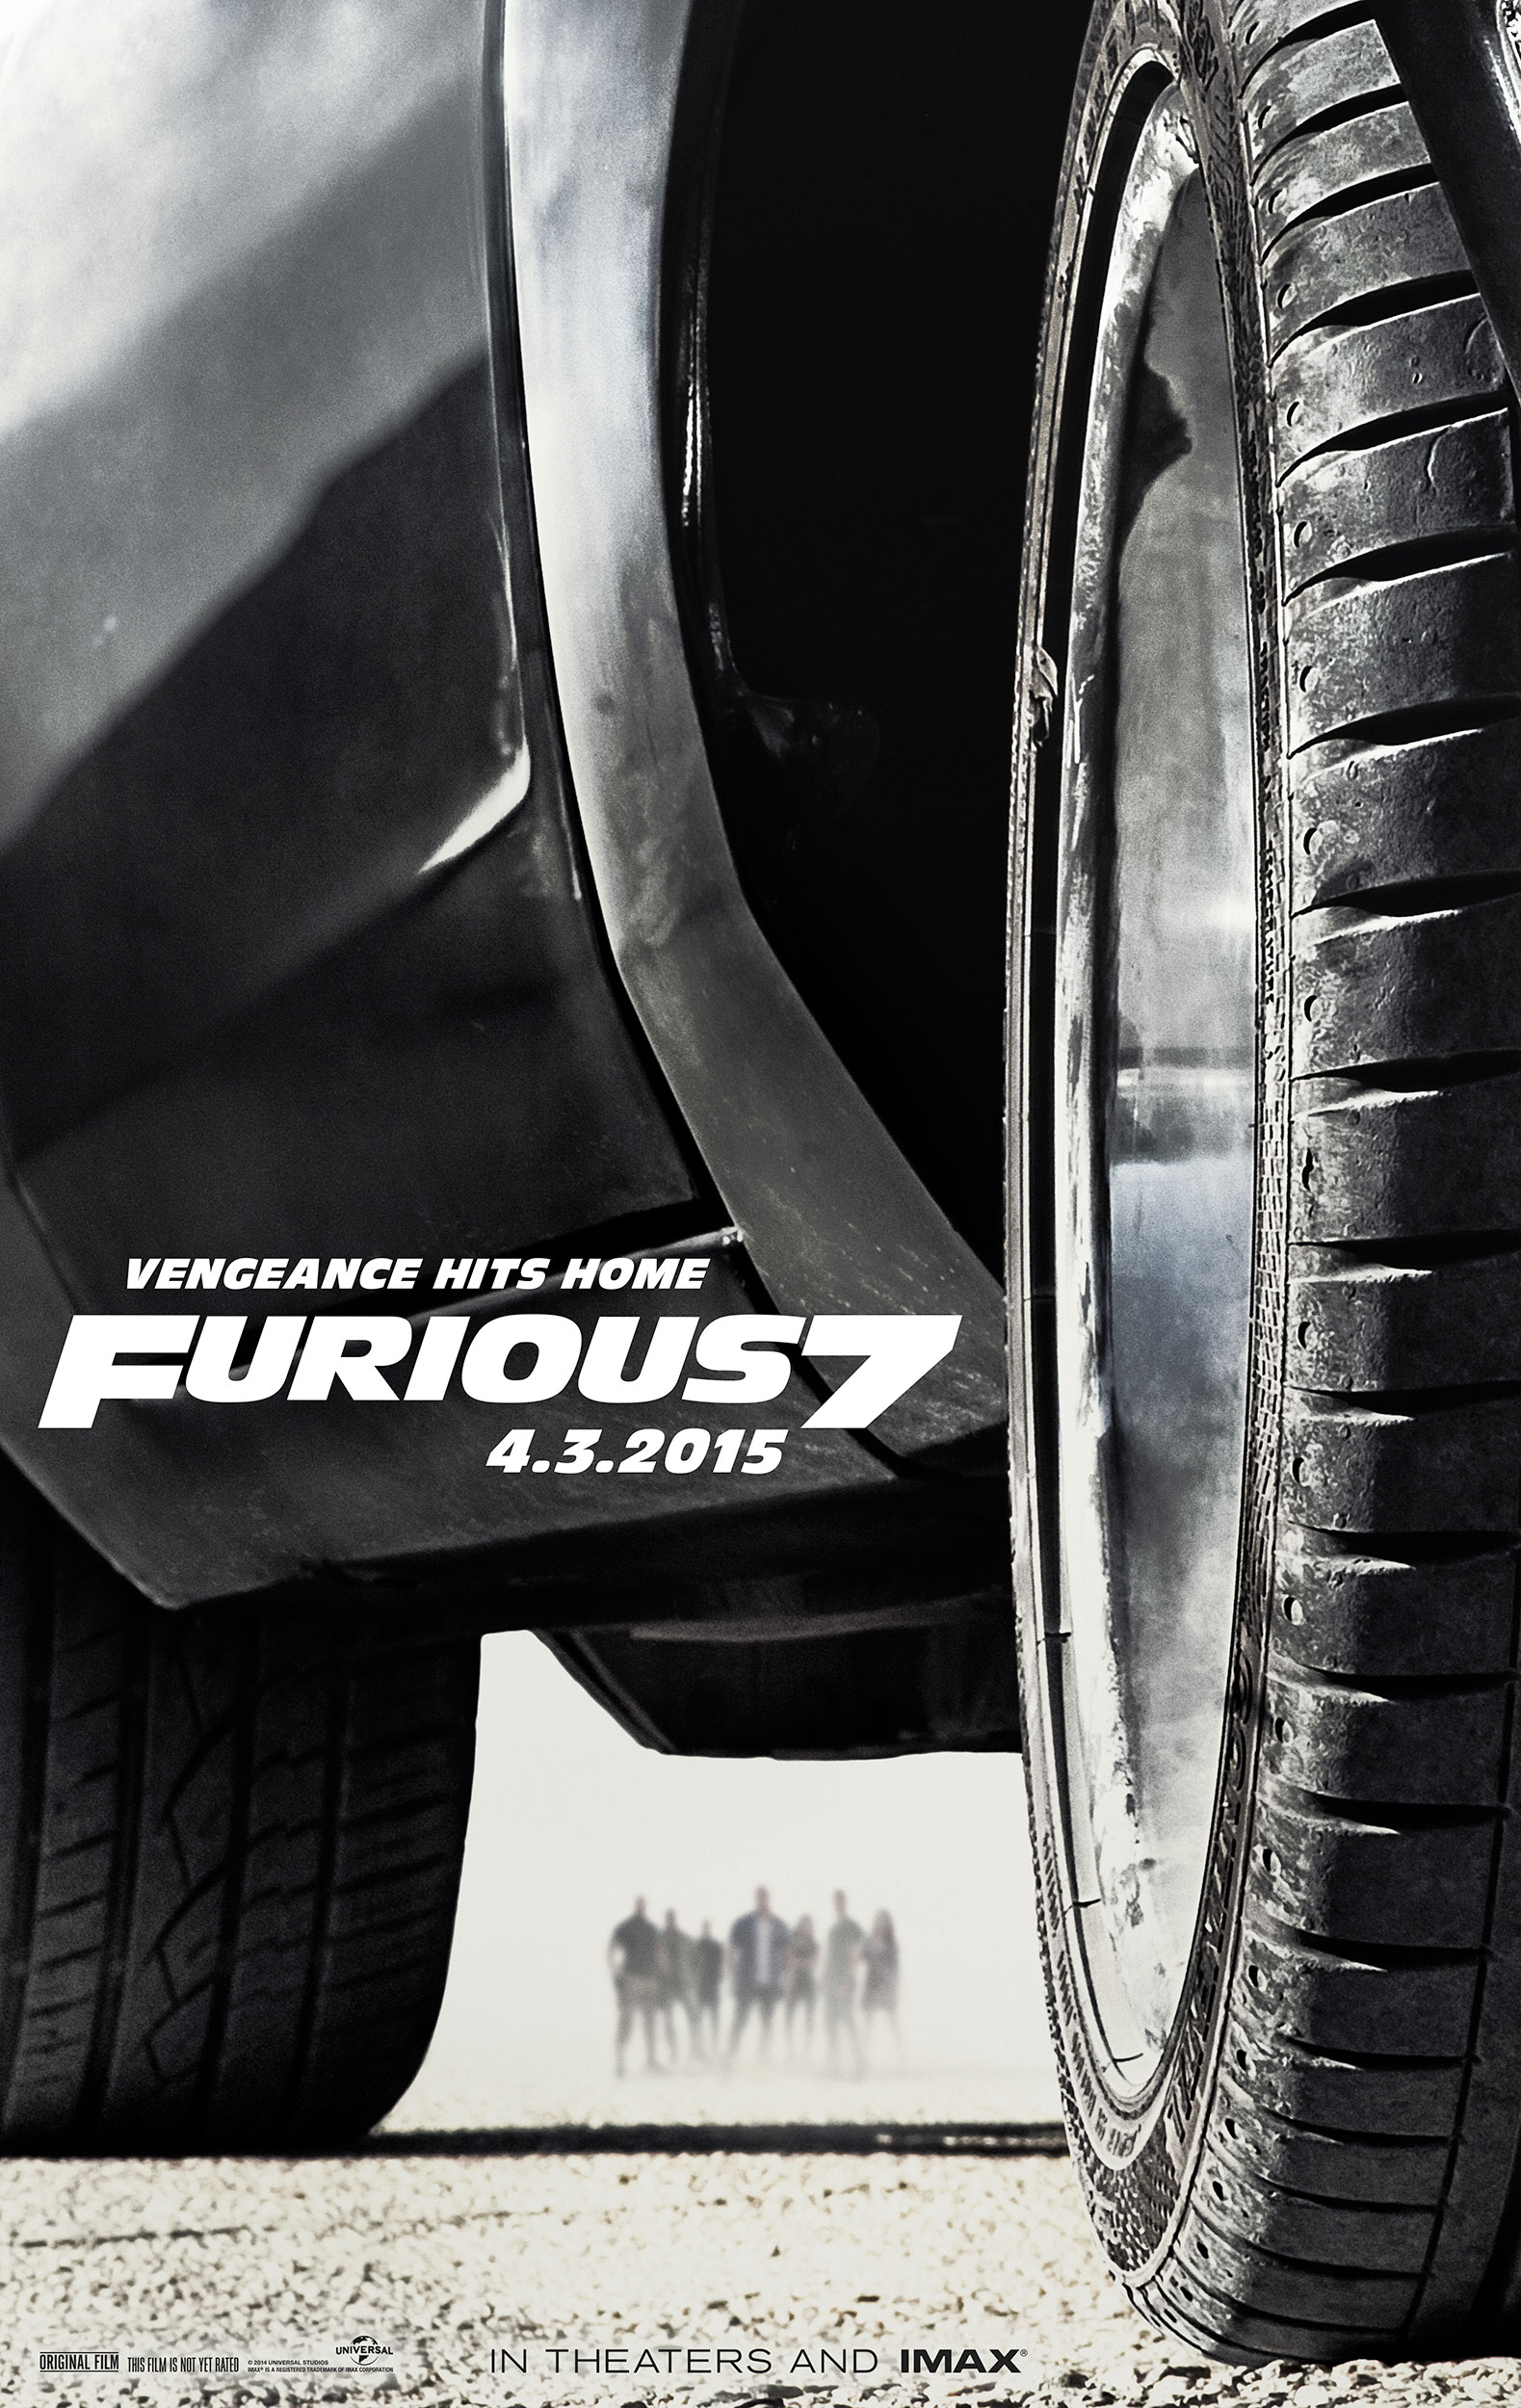 MV5BMTQxOTA2NDUzOV5BMl5BanBnXkFtZTgwNzY2MTMxMzE@._V1_ Interesting Info About Furious 7 Watch Free